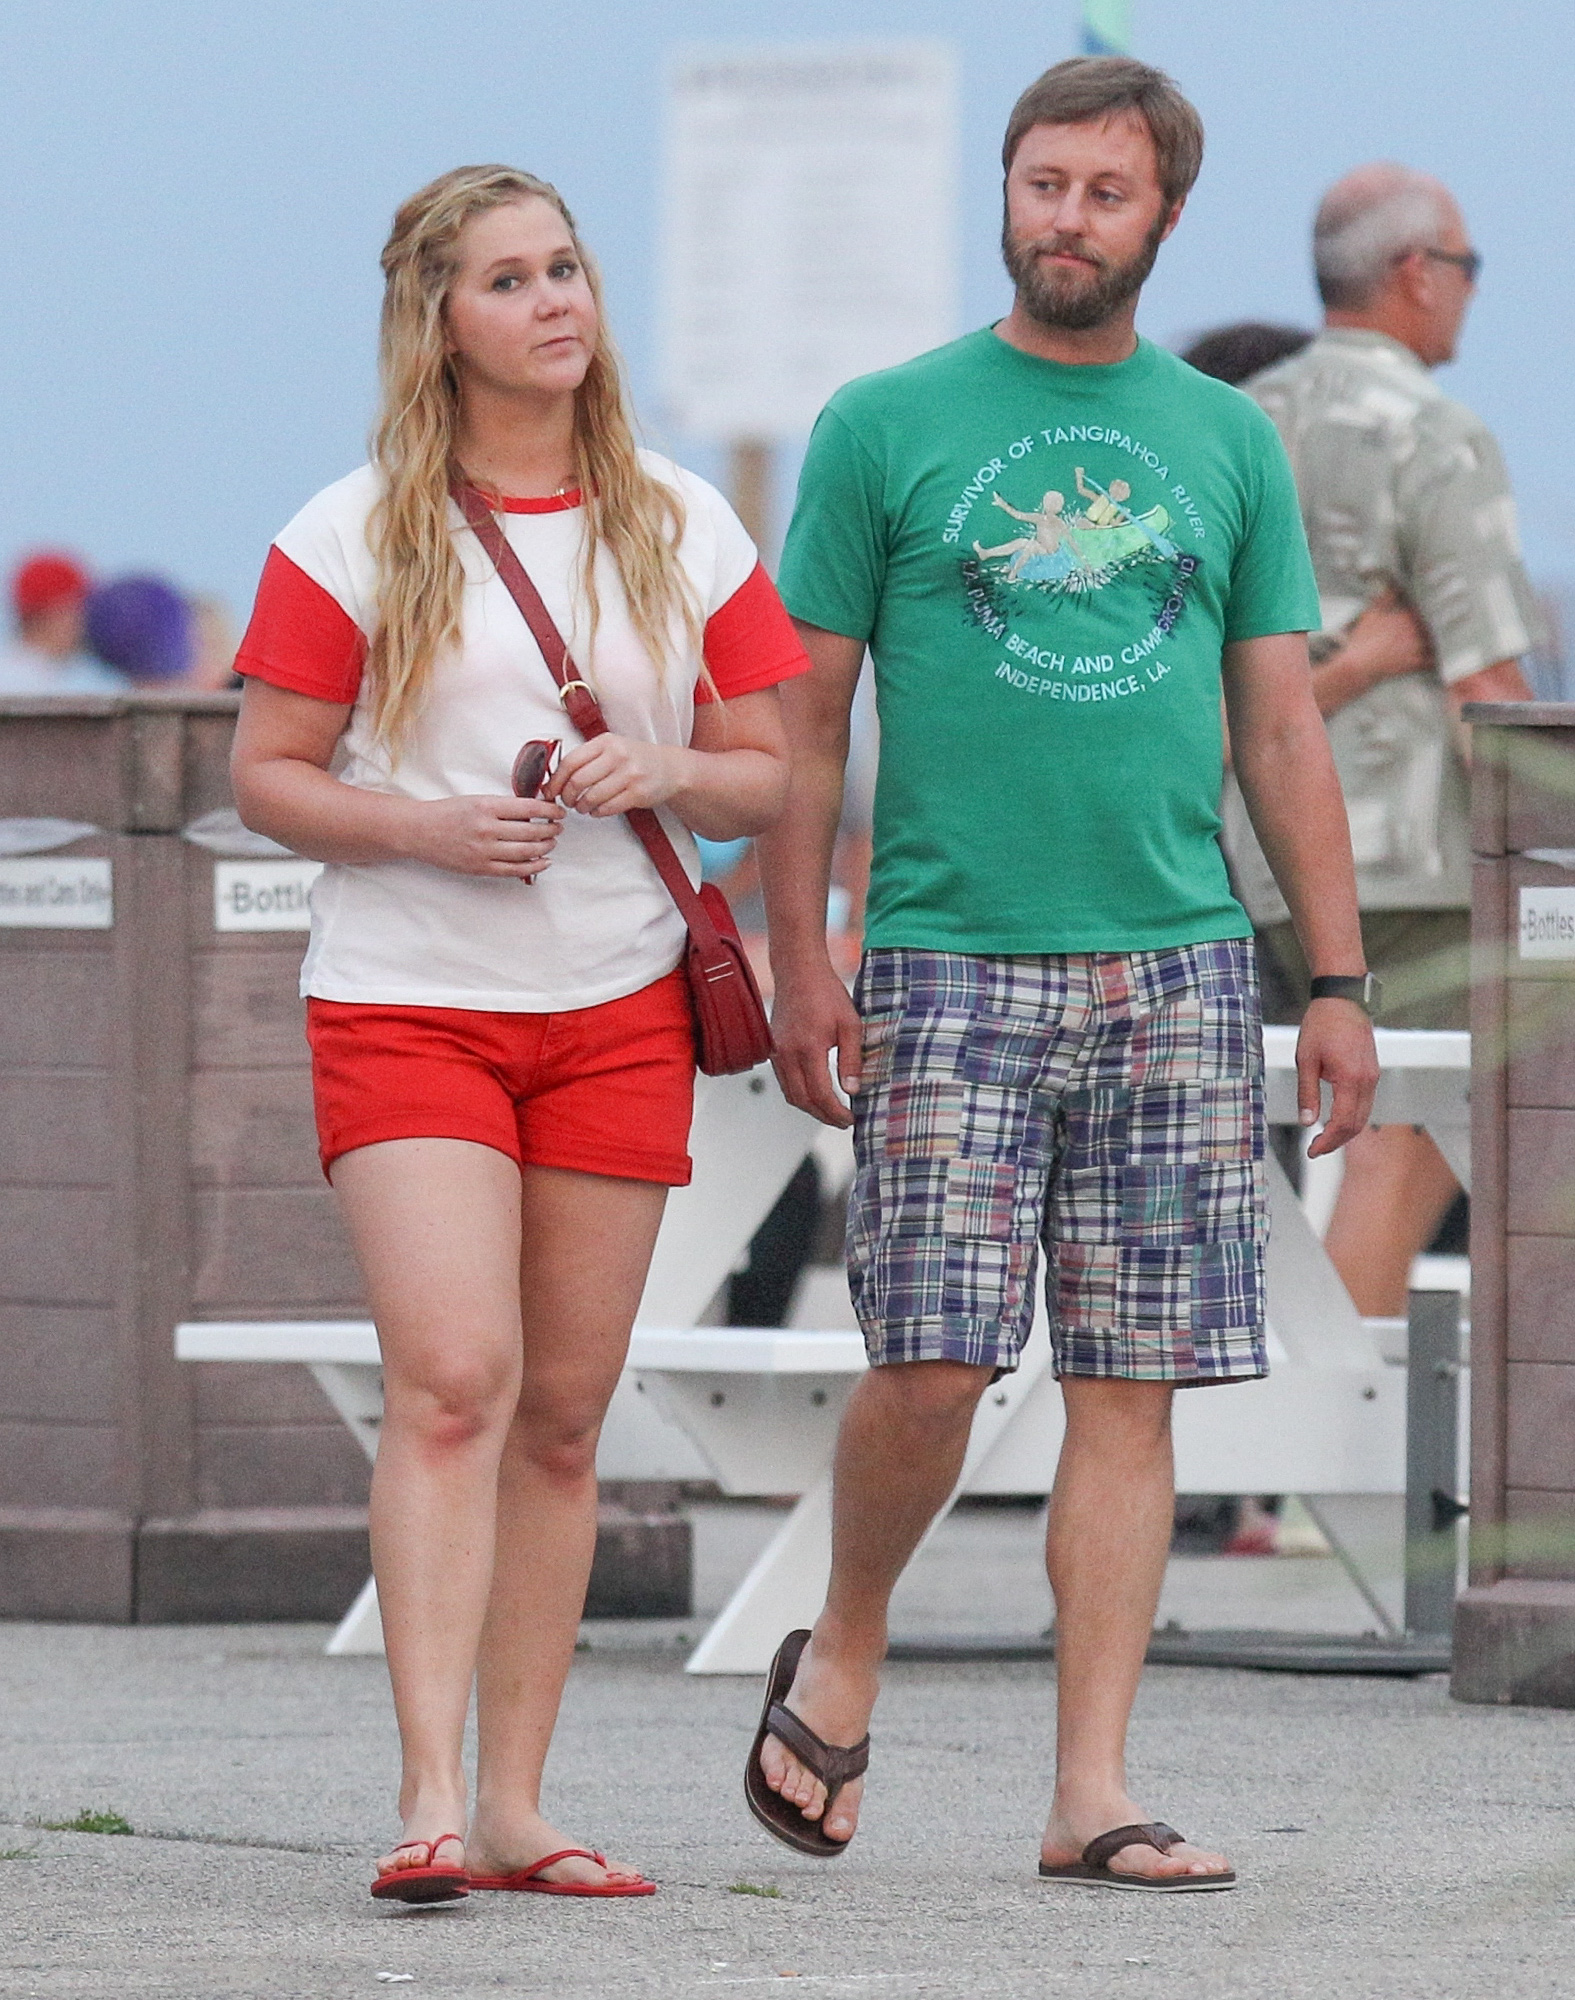 *EXCLUSIVE* Amy Schumer and Rory Scovel out for a date on the set of 'I Feel Pretty'